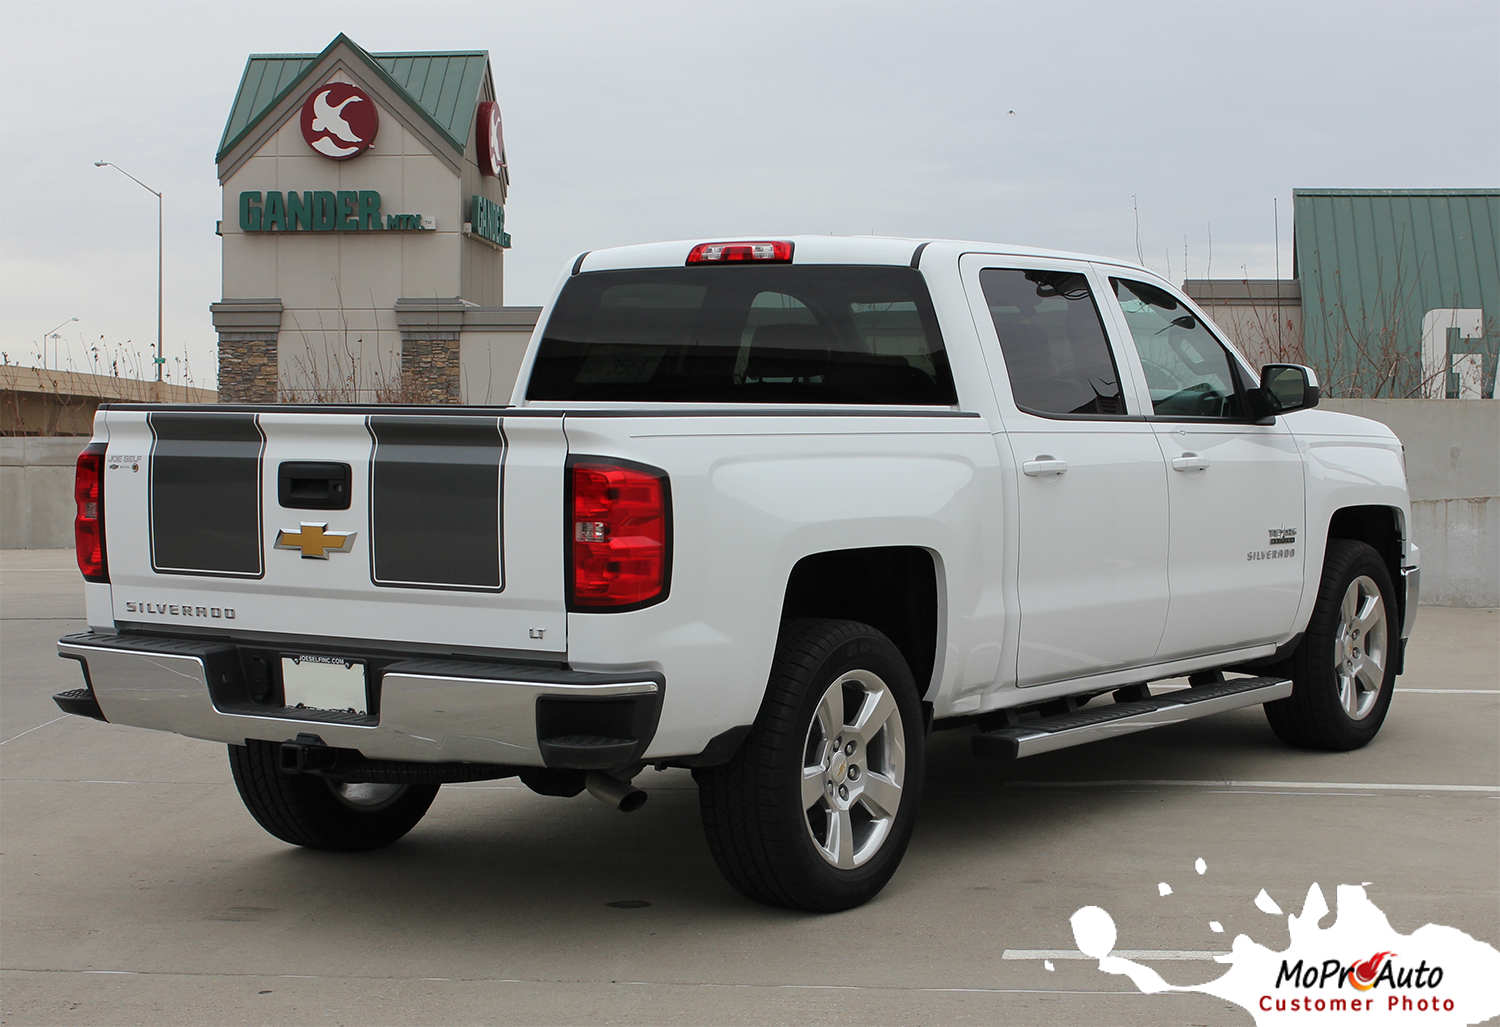 RALLY Chevy Silverado Vinyl Graphic Decal Rally - Truck bed decals customat superb graphics we specialize in custom decalsgraphics and